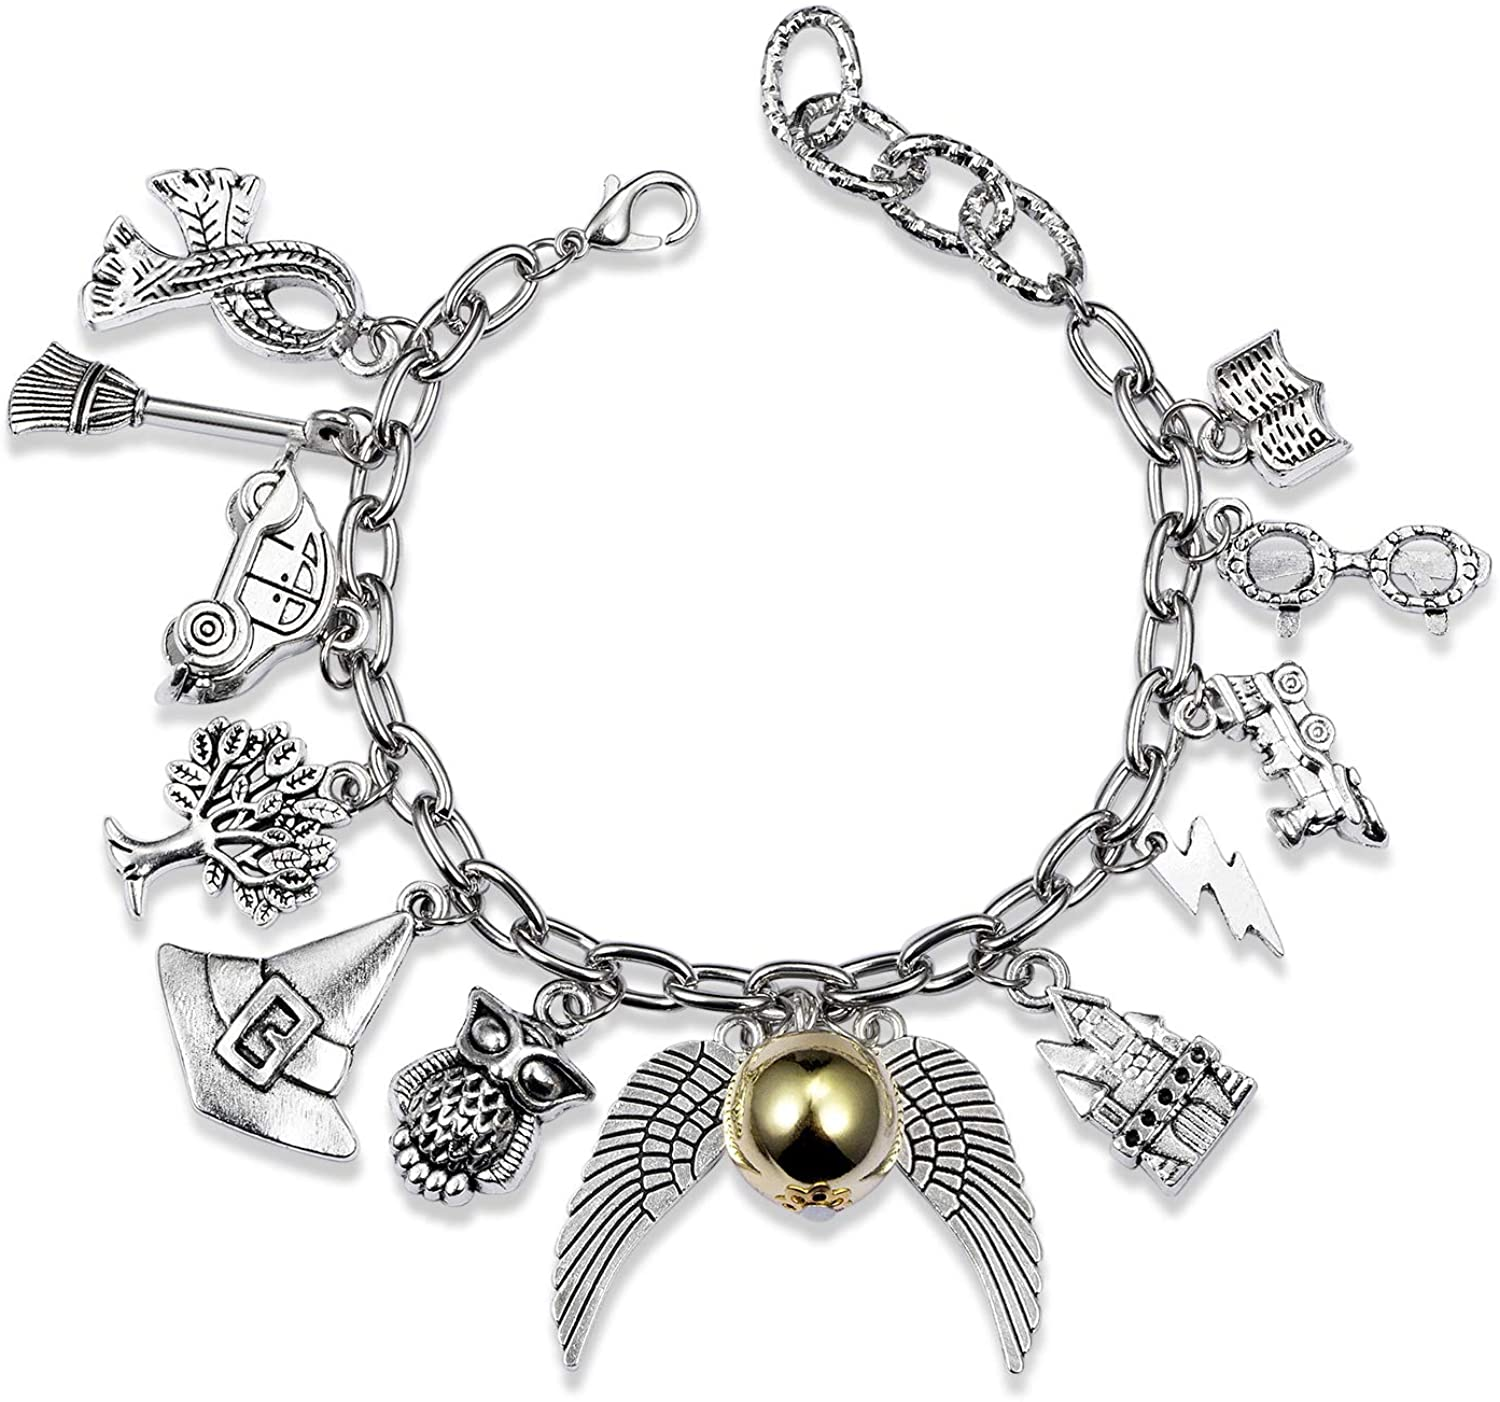 Bracelet Themed Charm Friendship Bracelets 8-Inch Silver Birthday Gift with Jewelry Bag For Teens Girls